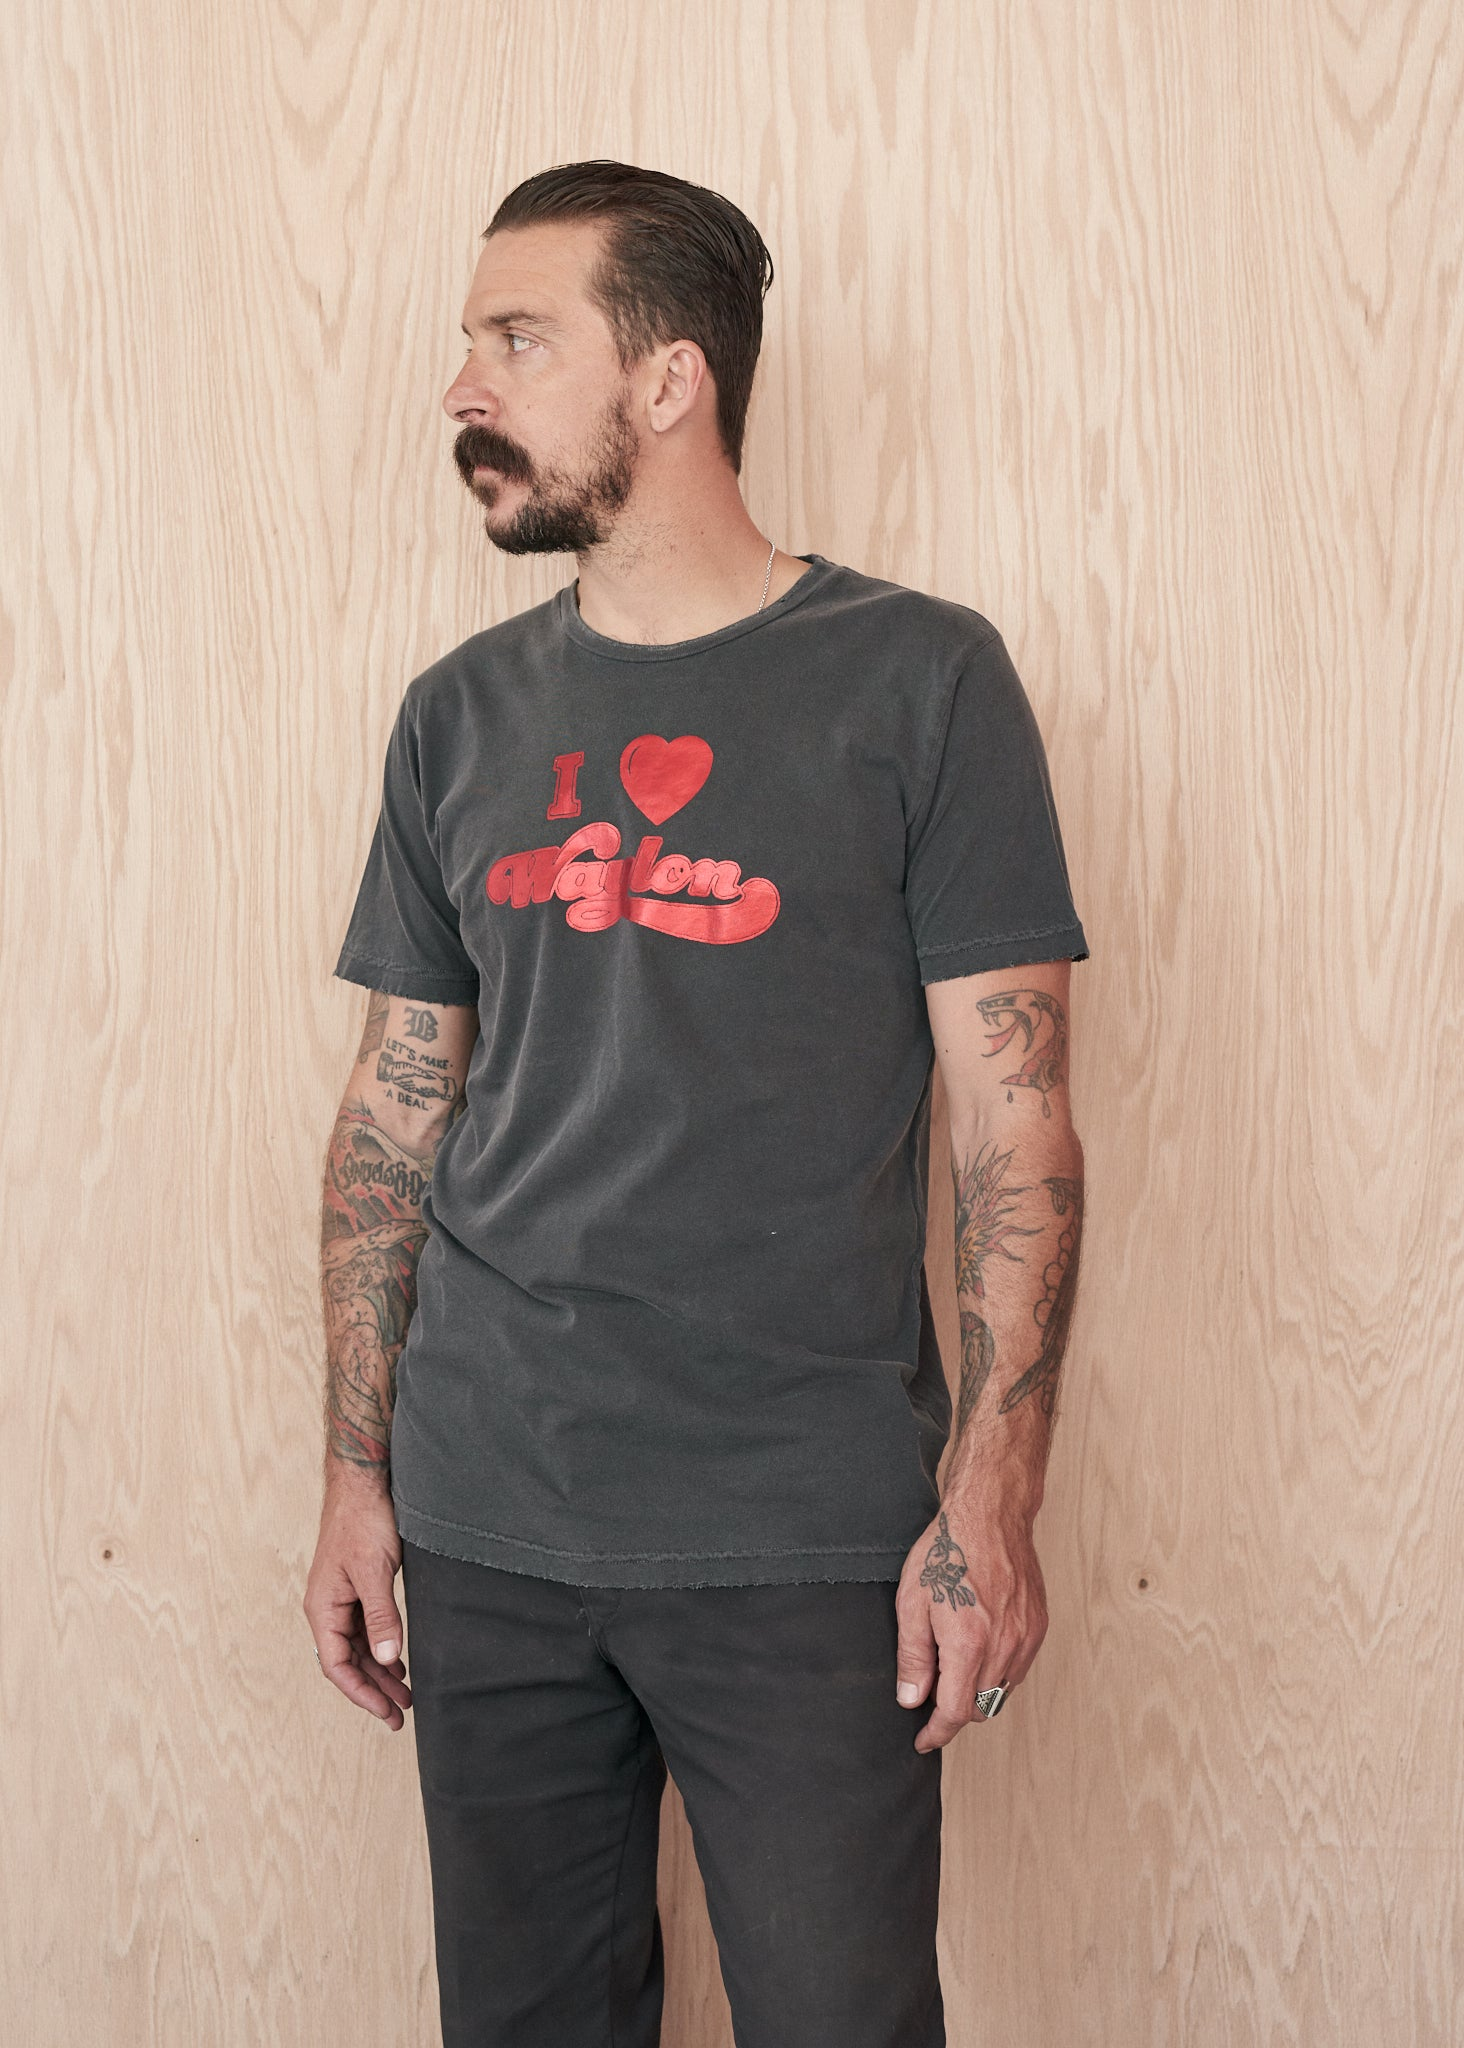 I Love Waylon Men's Tee Shirt - Men's Tee Shirt - Midnight Rider